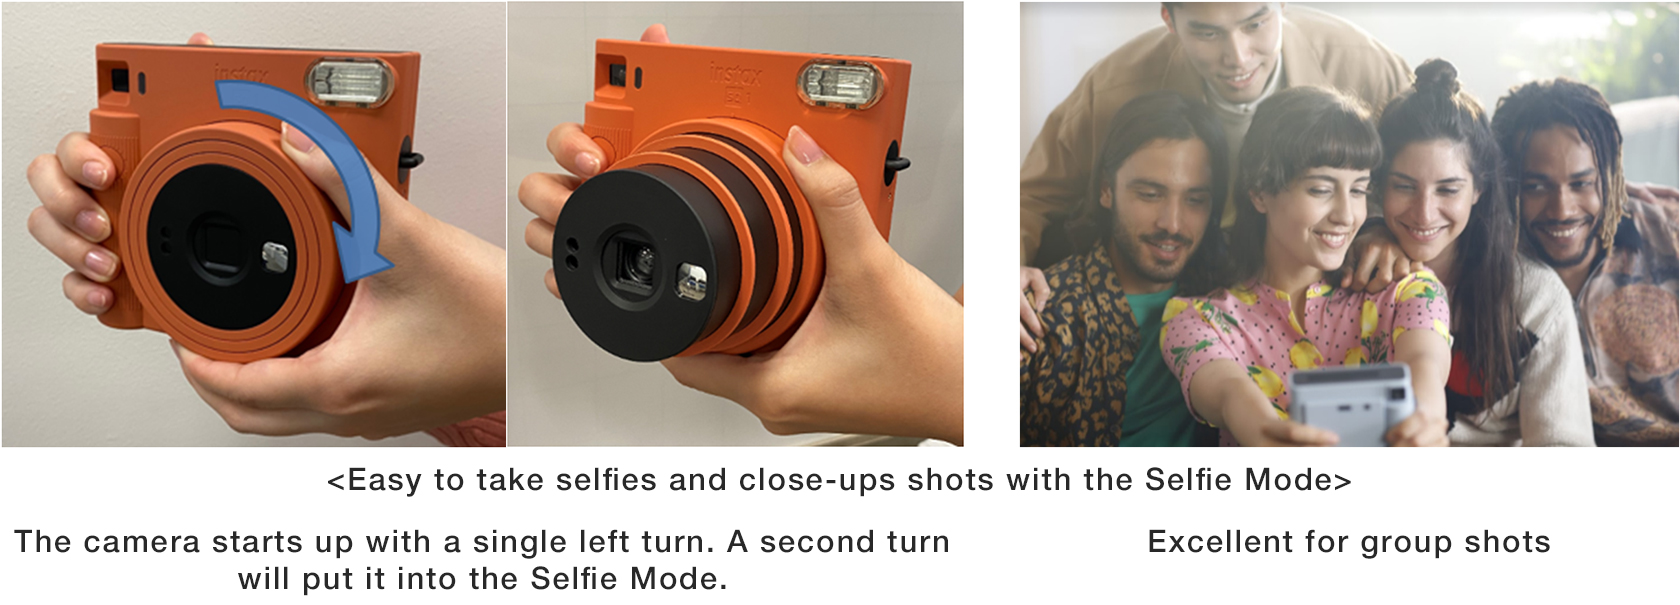 [image]Easy to take selfies and close-ups shots with the Selfie Mode